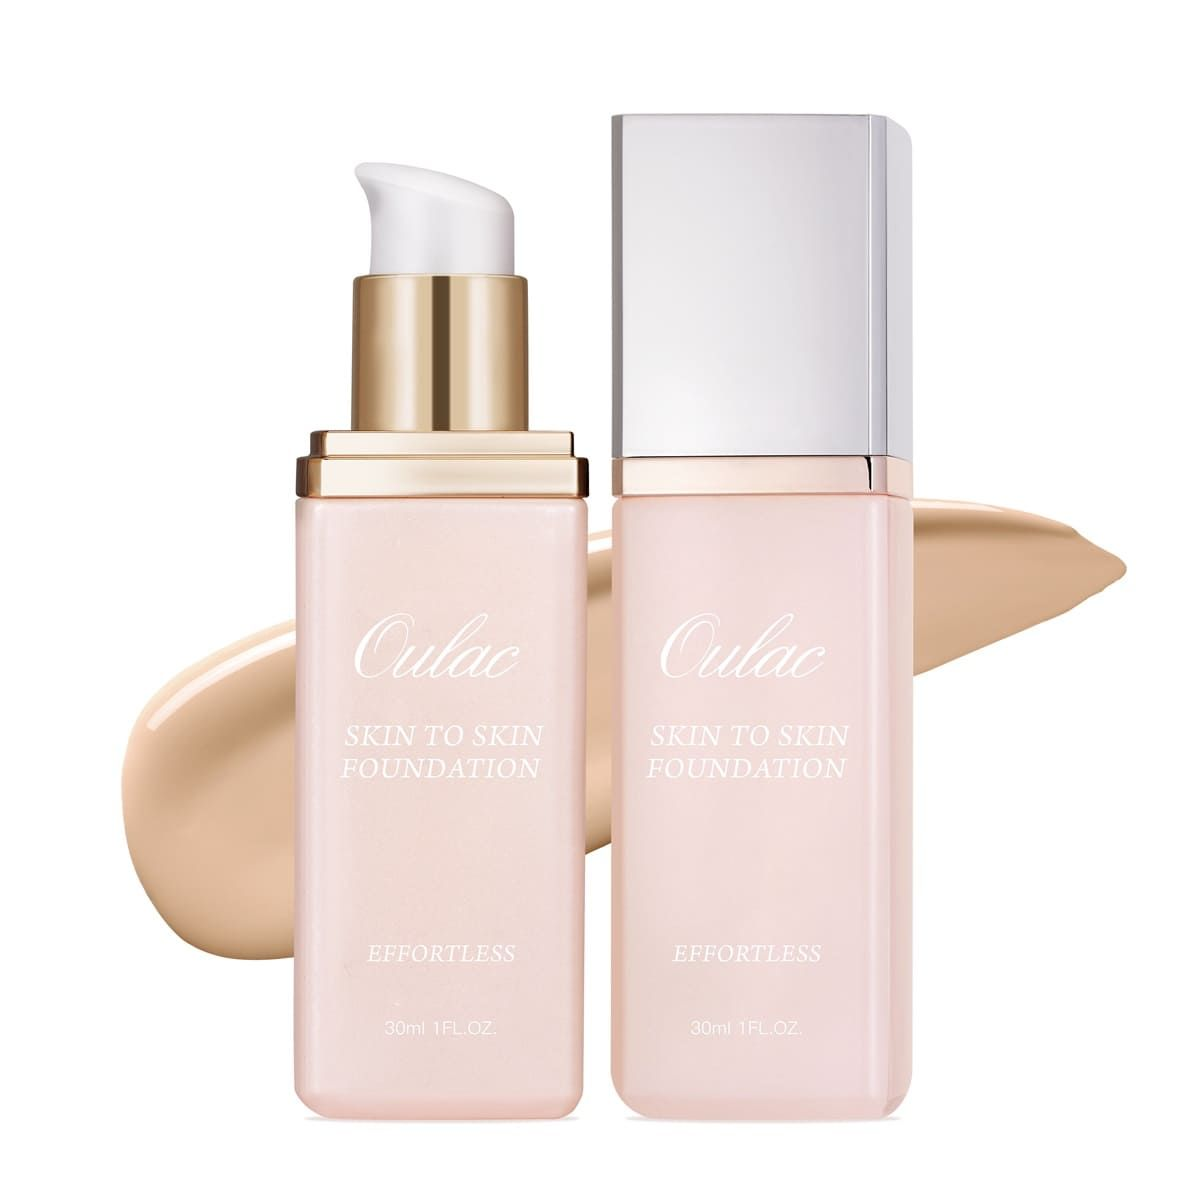 OULAC skin to skin foundation  hot selling cosmetic face makeup cruelty free flawless smooth and moisturizing high concealment